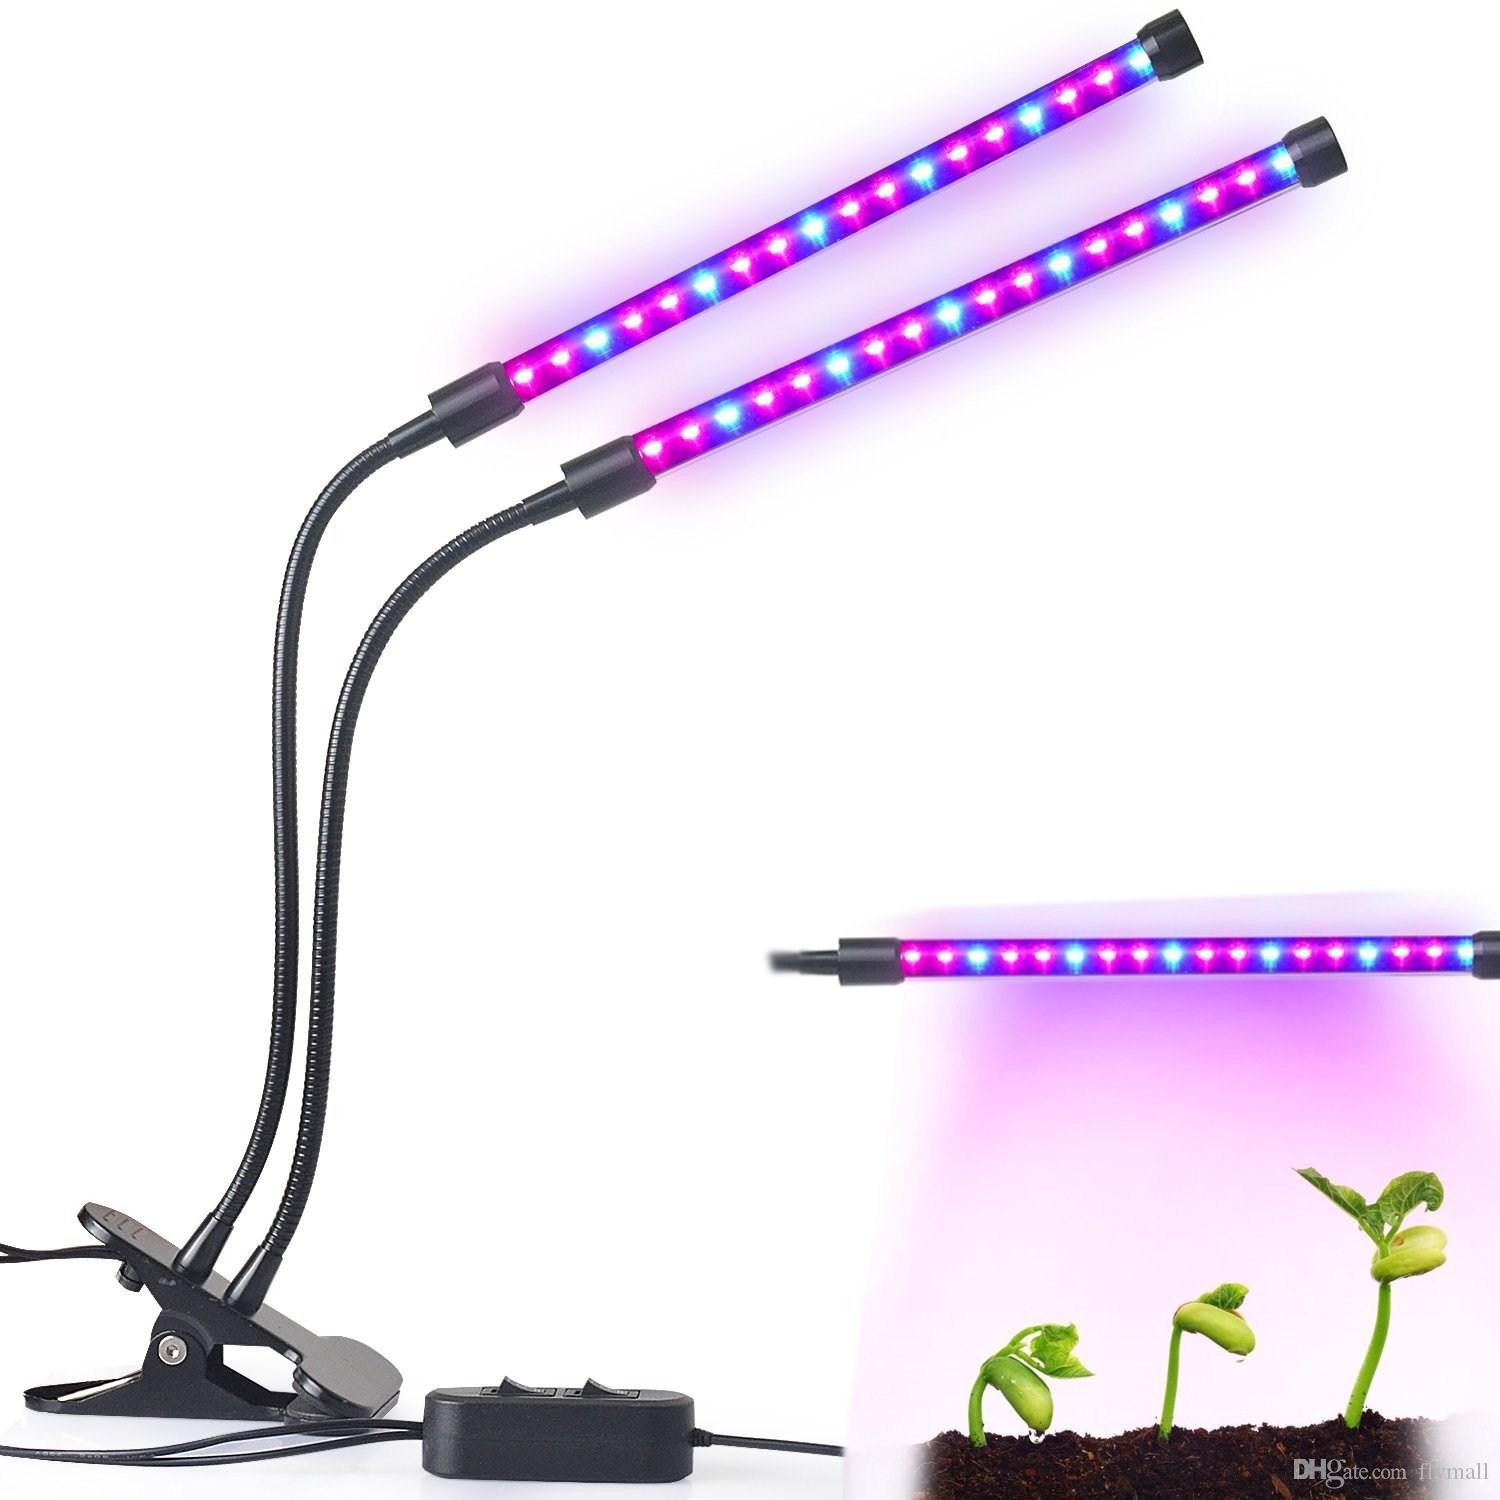 ggl products archive lighting greenology lights grow